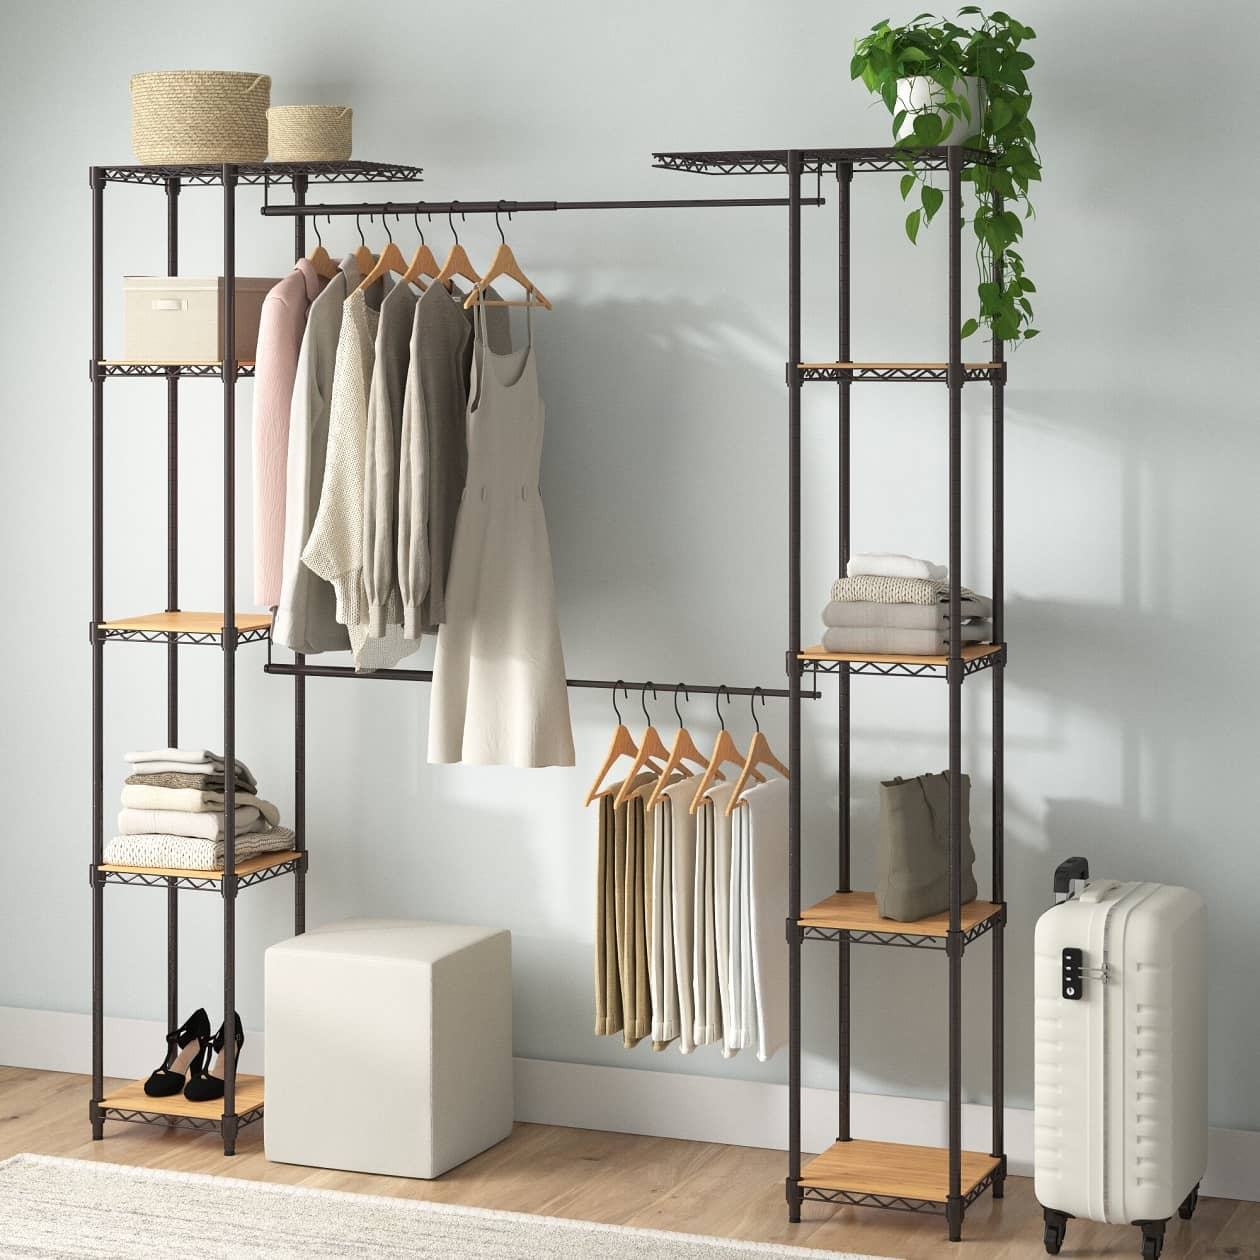 Freestanding closet with shelves and hanger